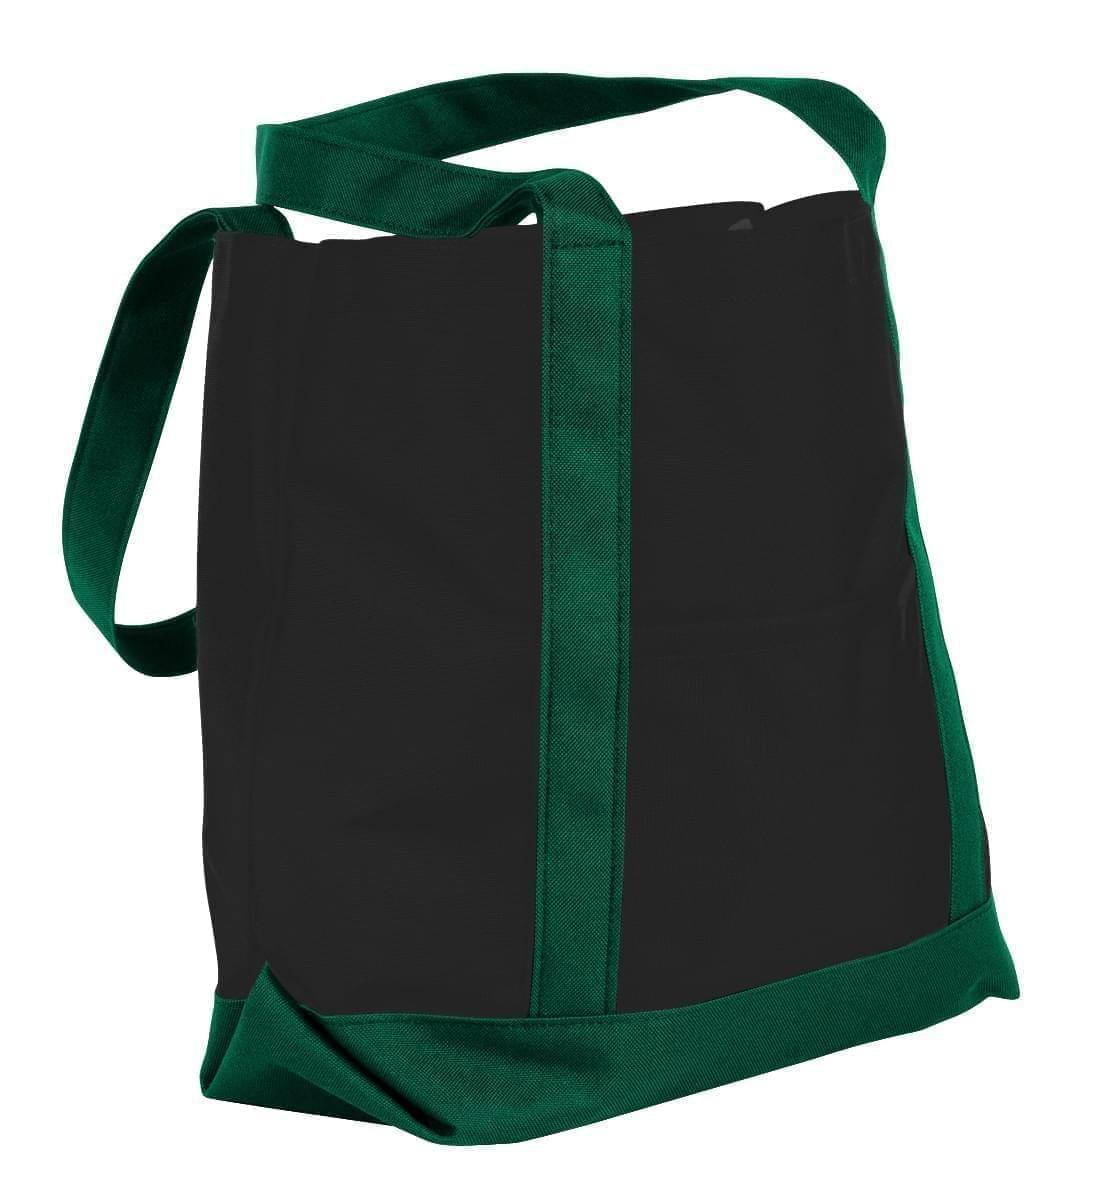 USA Made Canvas Fashion Tote Bags, Black-Hunter Green, XAACL1UAHV